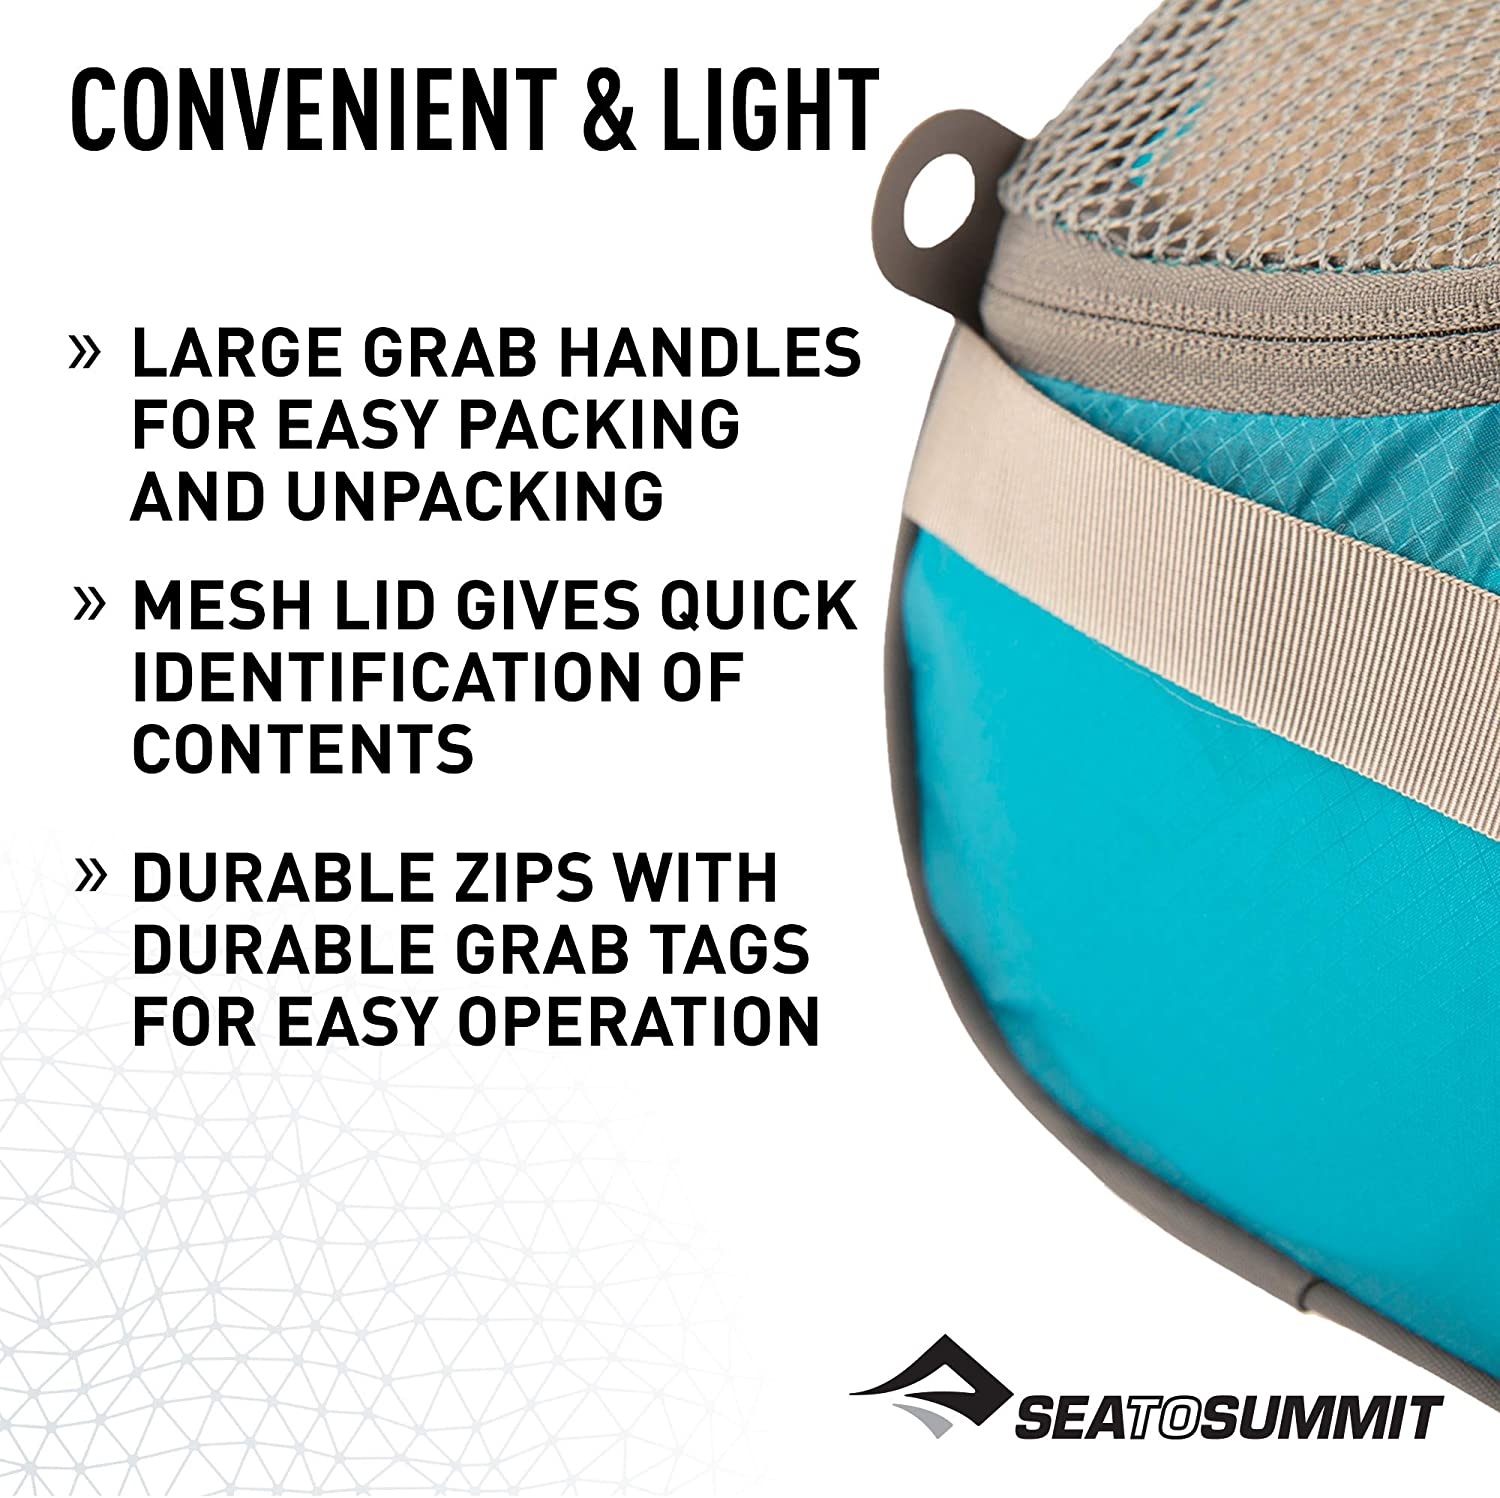 Sea to Summit Travelling Light Packing Cell